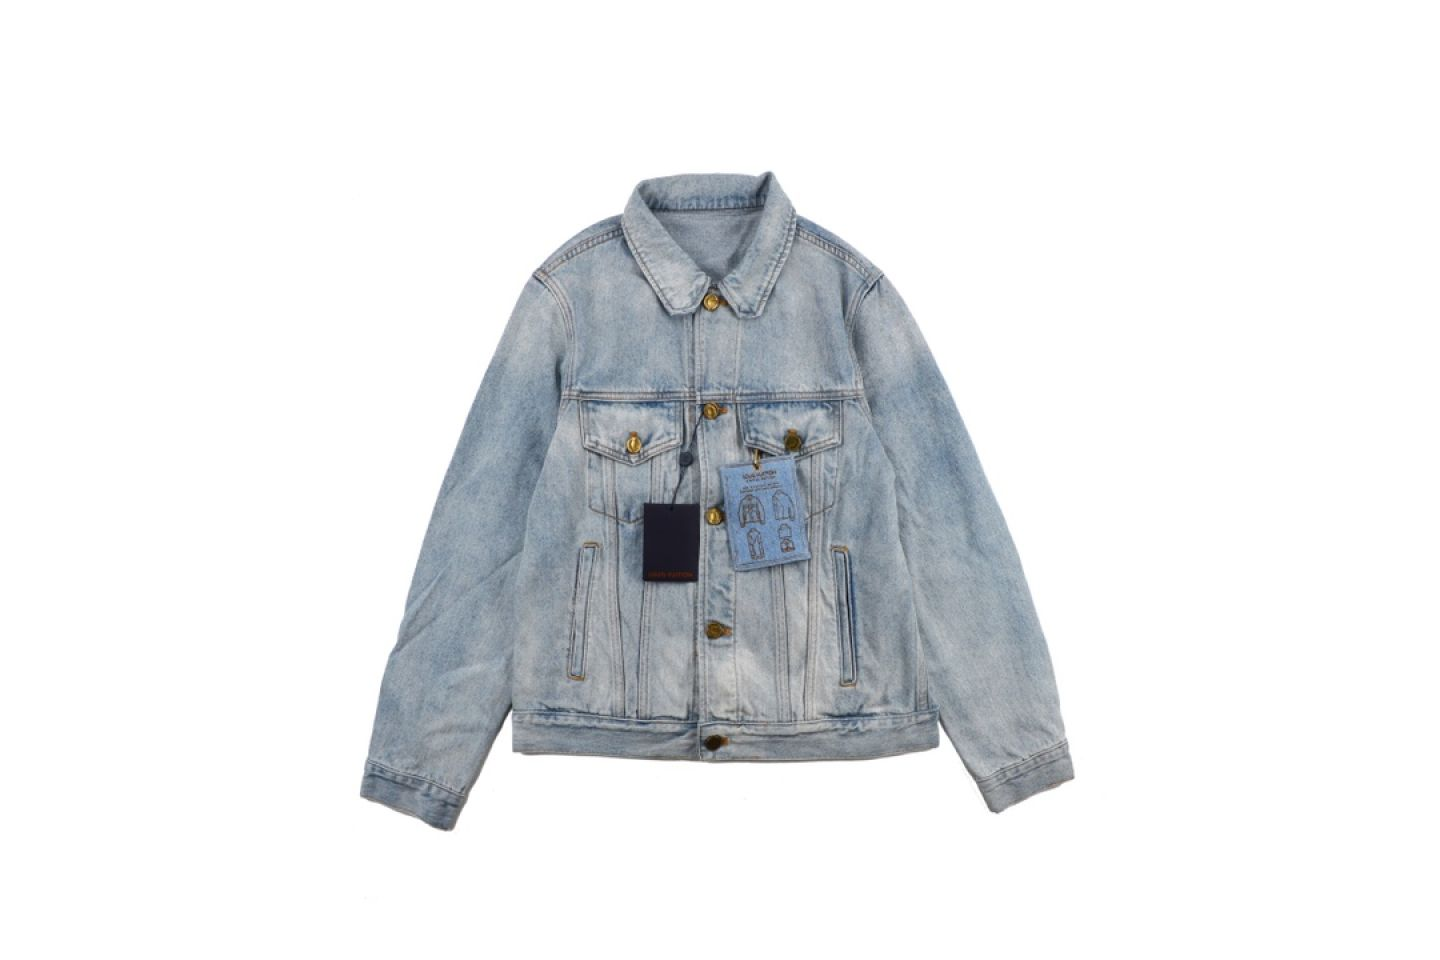 Jacket Louis Vuitton 20fw wash list vintage denim jacket 1 louis_vuitton_20fw_wash_list_vintage_denim_jacket_1